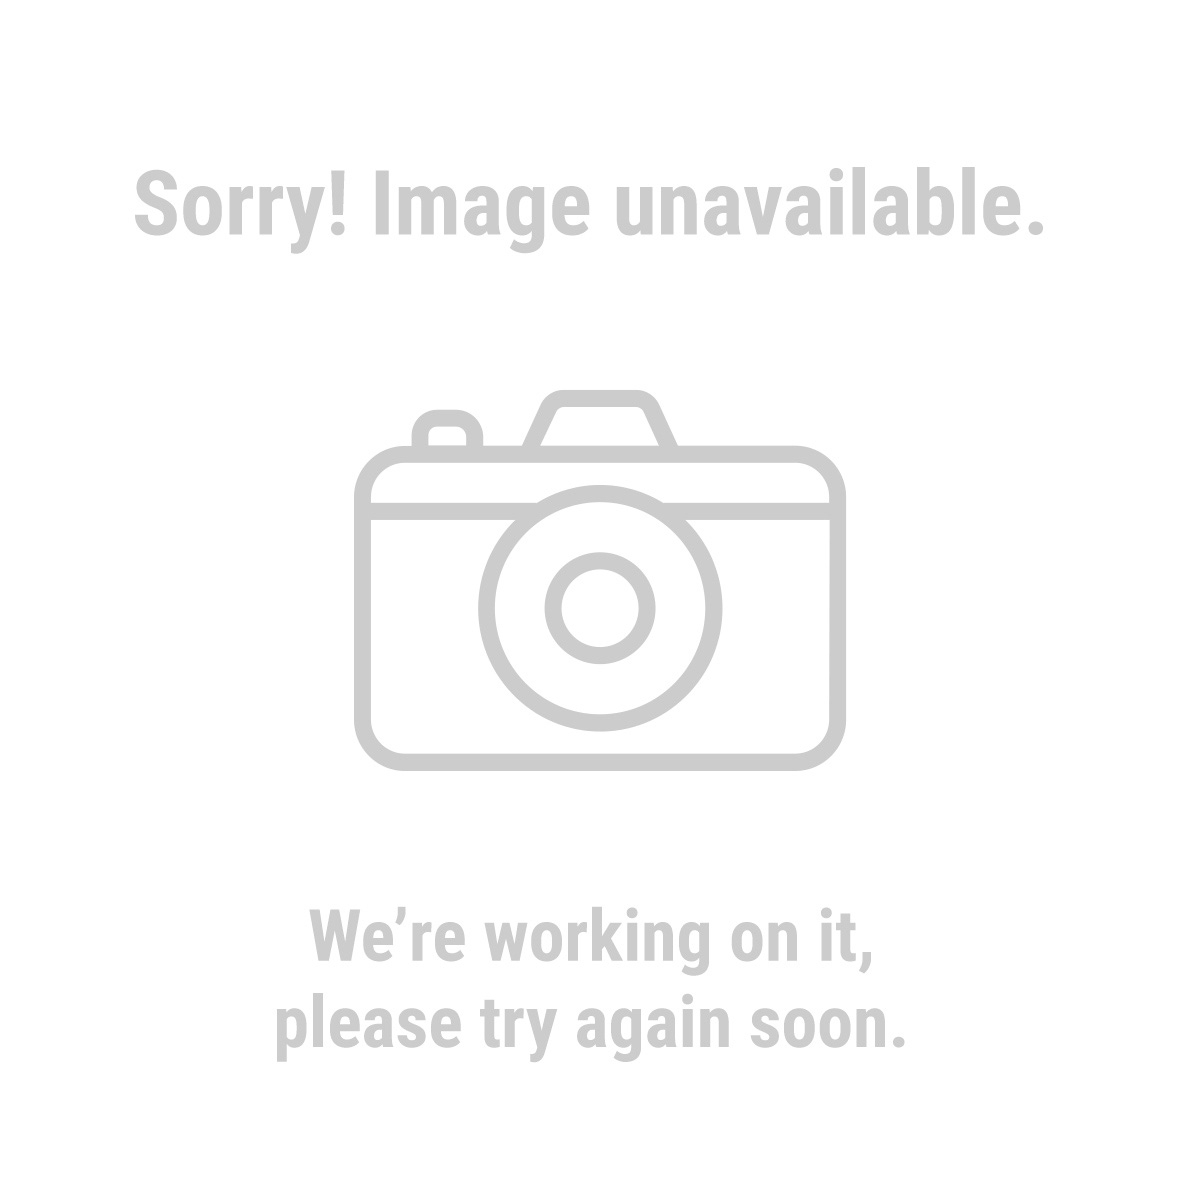 "Pittsburgh® 68977 24"" Ratchet Bar Clamp/Spreader"